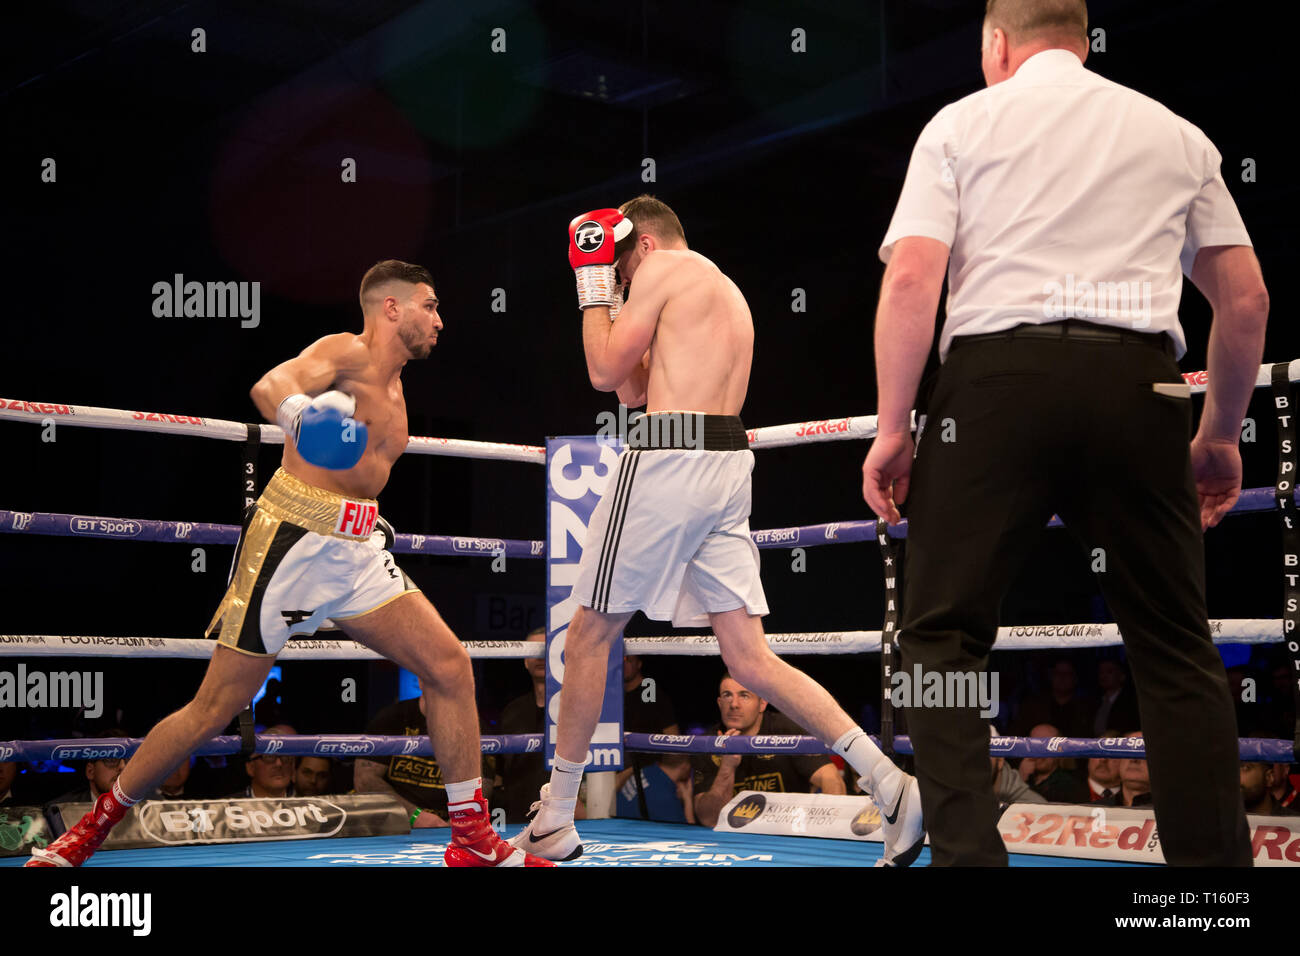 Leicester, UK. 23rd Mar, 2019.  The Morningside Arena Leicester International Light Heavyweight fight between Tommy Fury and Maksims Ogurcovs  People in Picture Credit: Dean Fardell/Alamy Live News - Stock Image